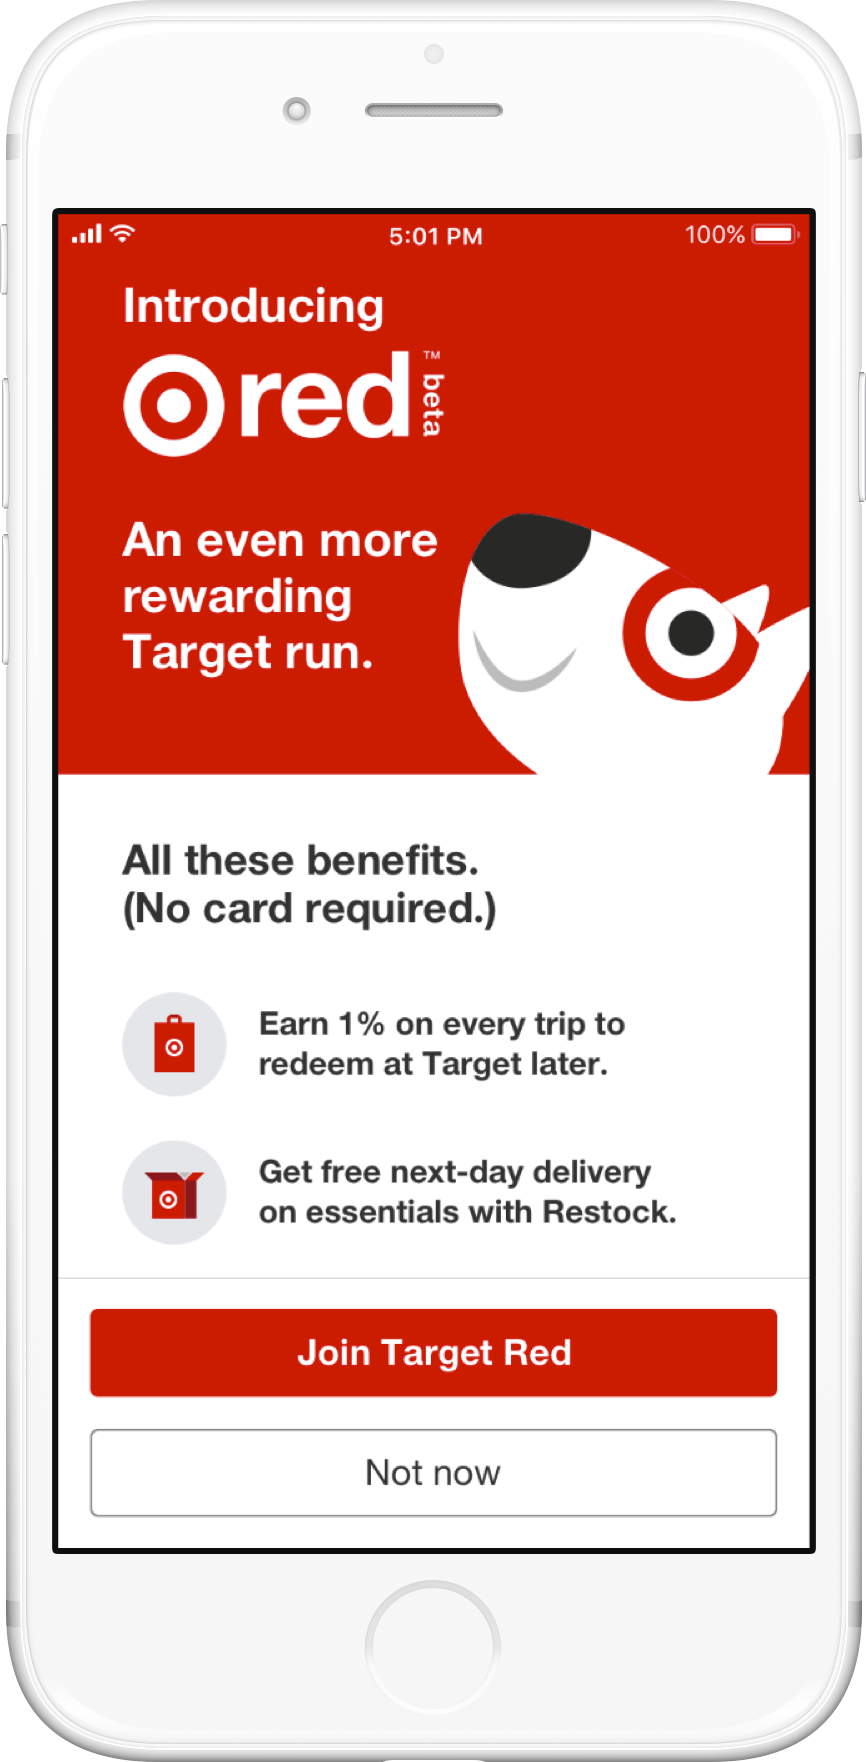 Target Expands Dallas Test Of New Loyalty Program After